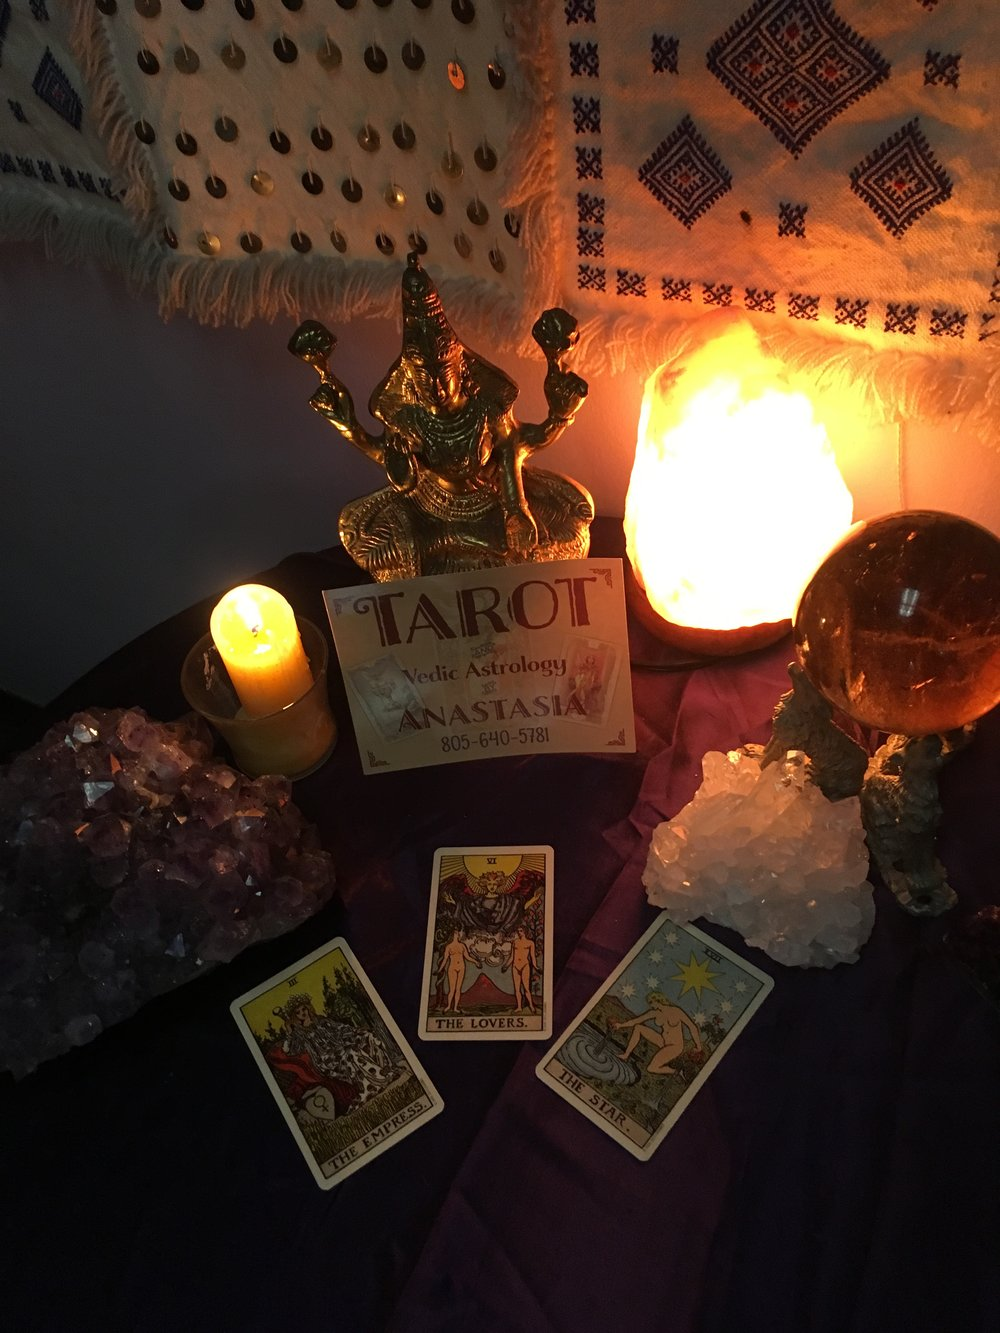 Psychic readings with Anastasia - Tarot & LeNormand